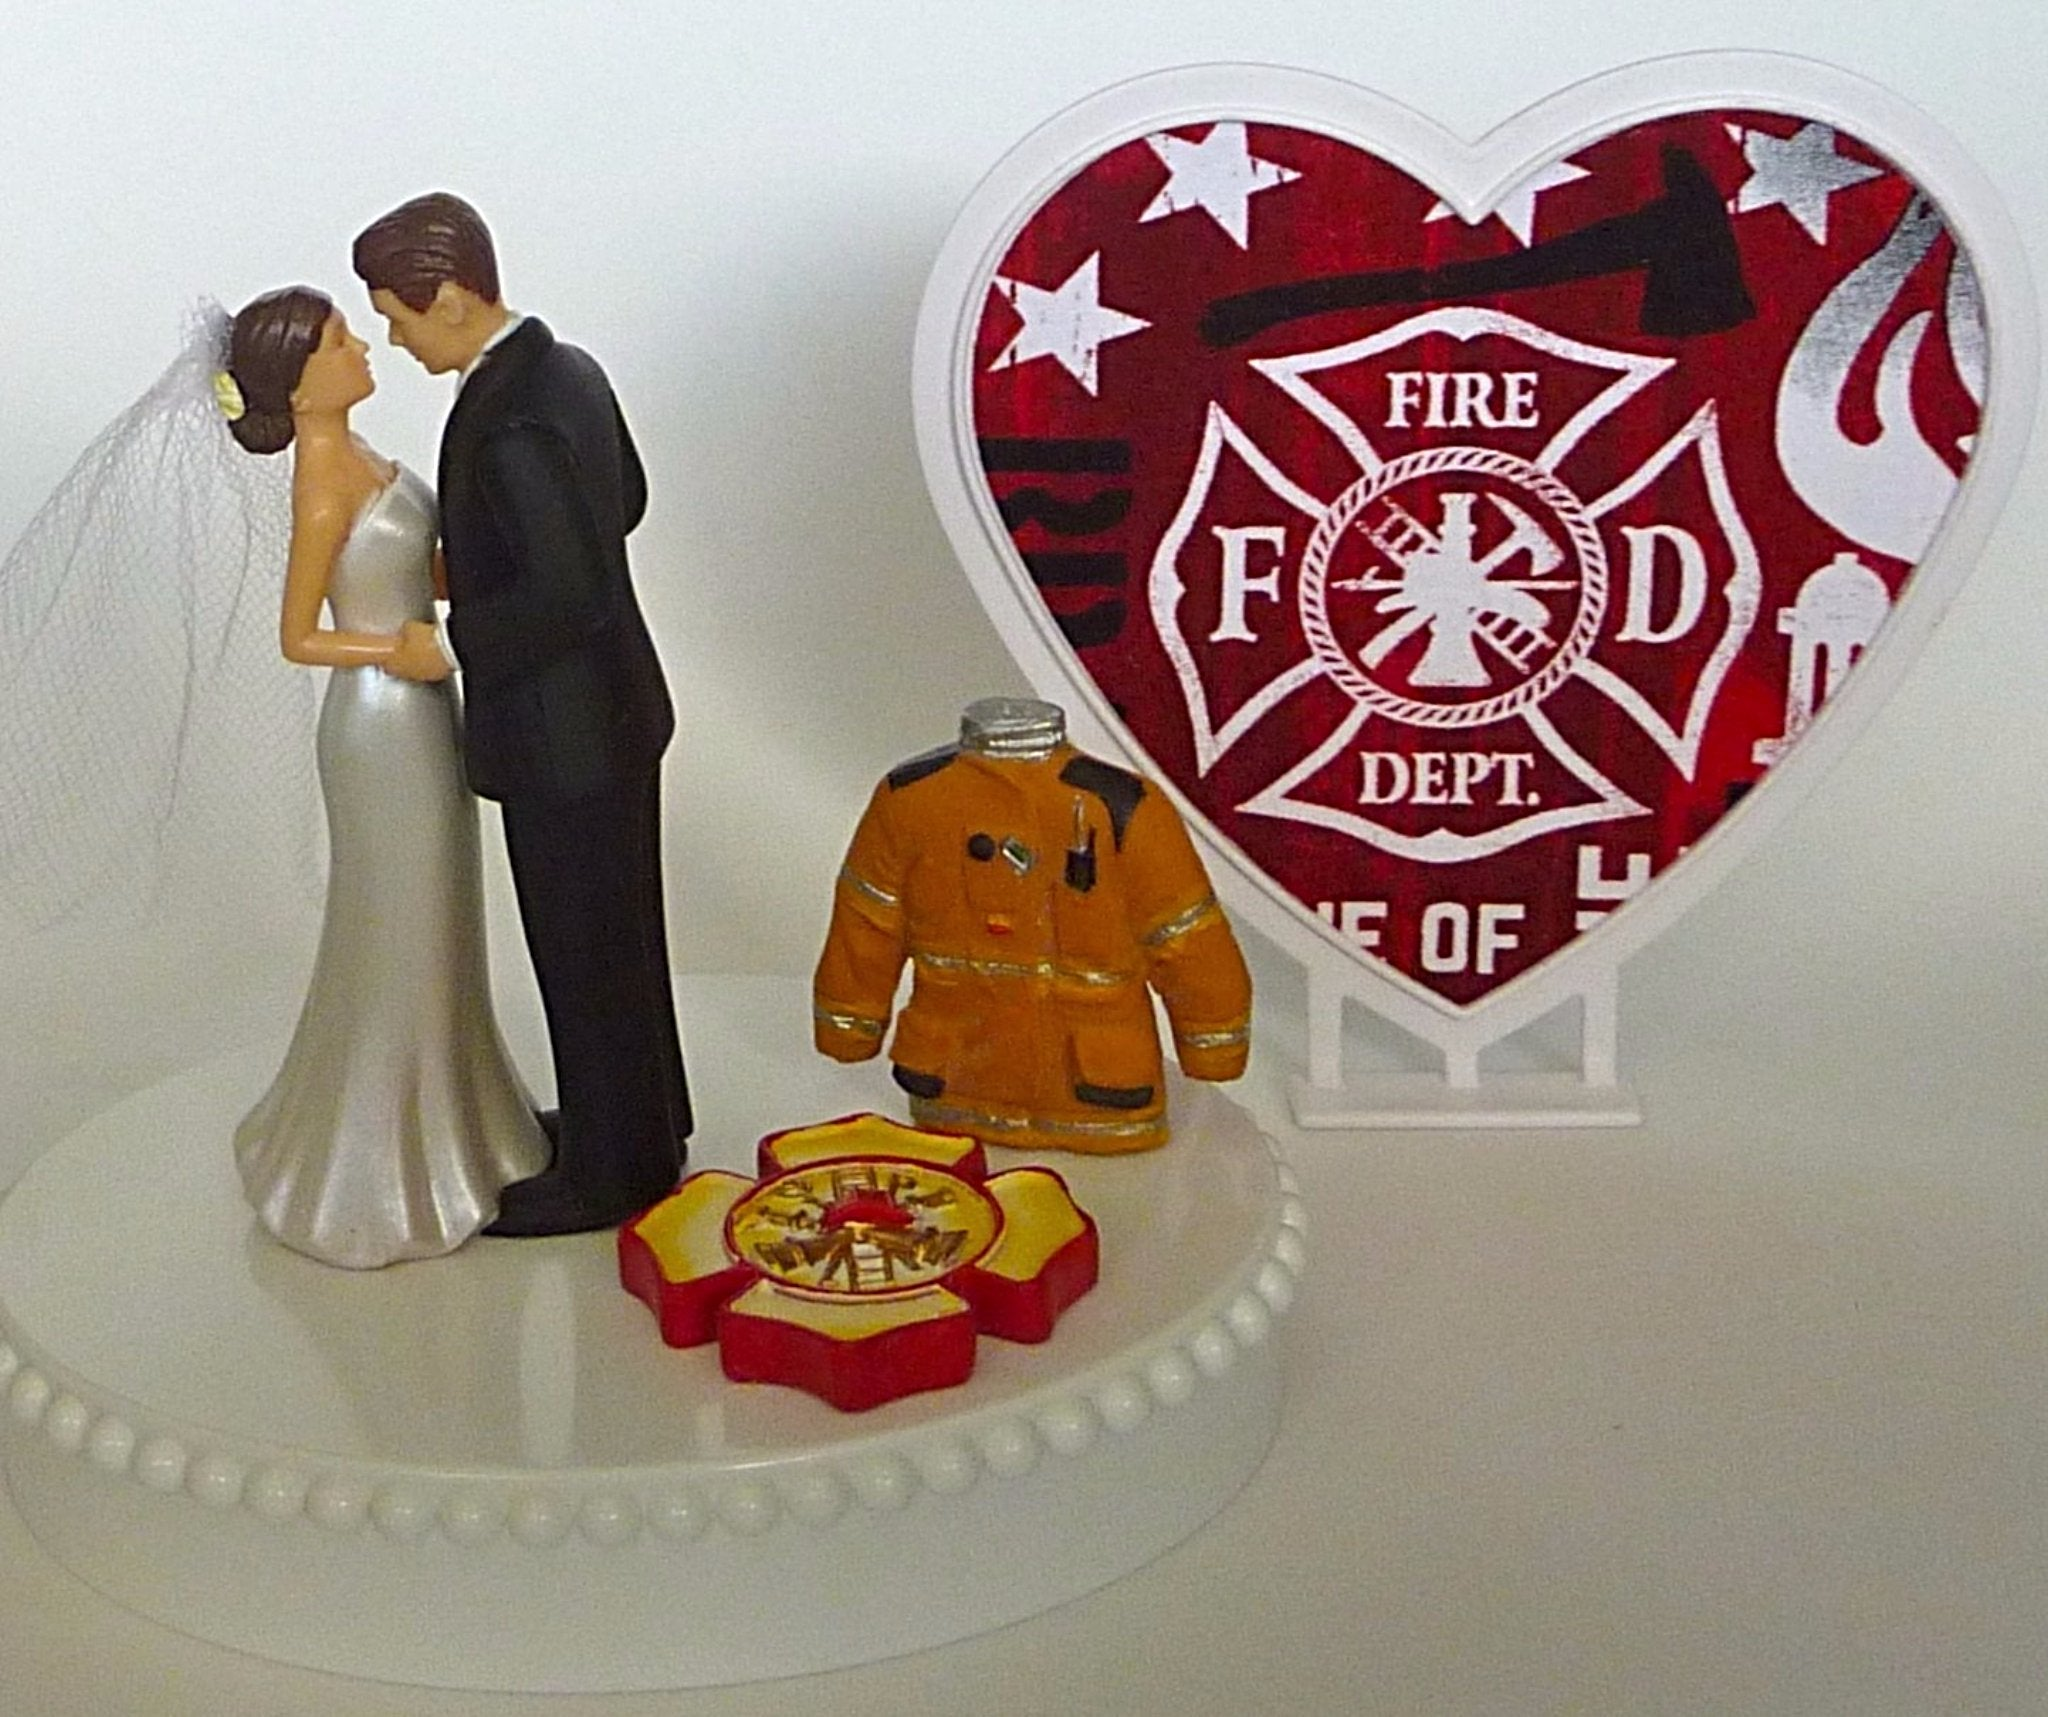 Maltese cross wedding cake topper firefighter Fun Wedding Things fireman groom's cake top bride pretty